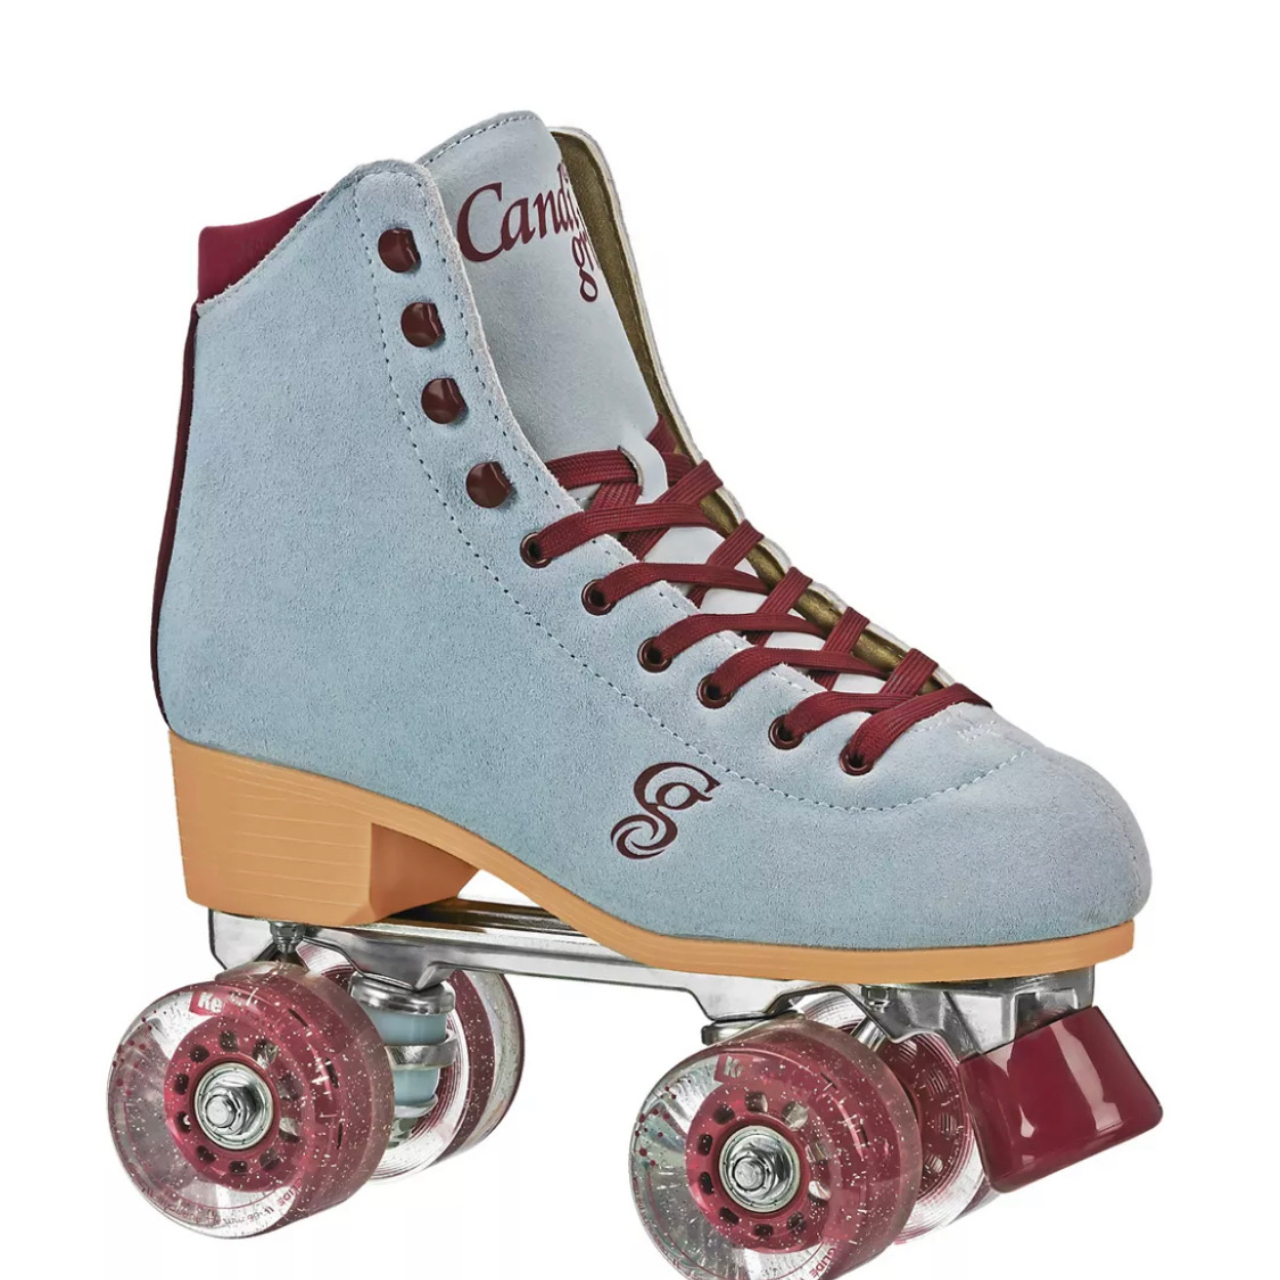 Product Image 1 - Candi Girl Suede Roller Skates